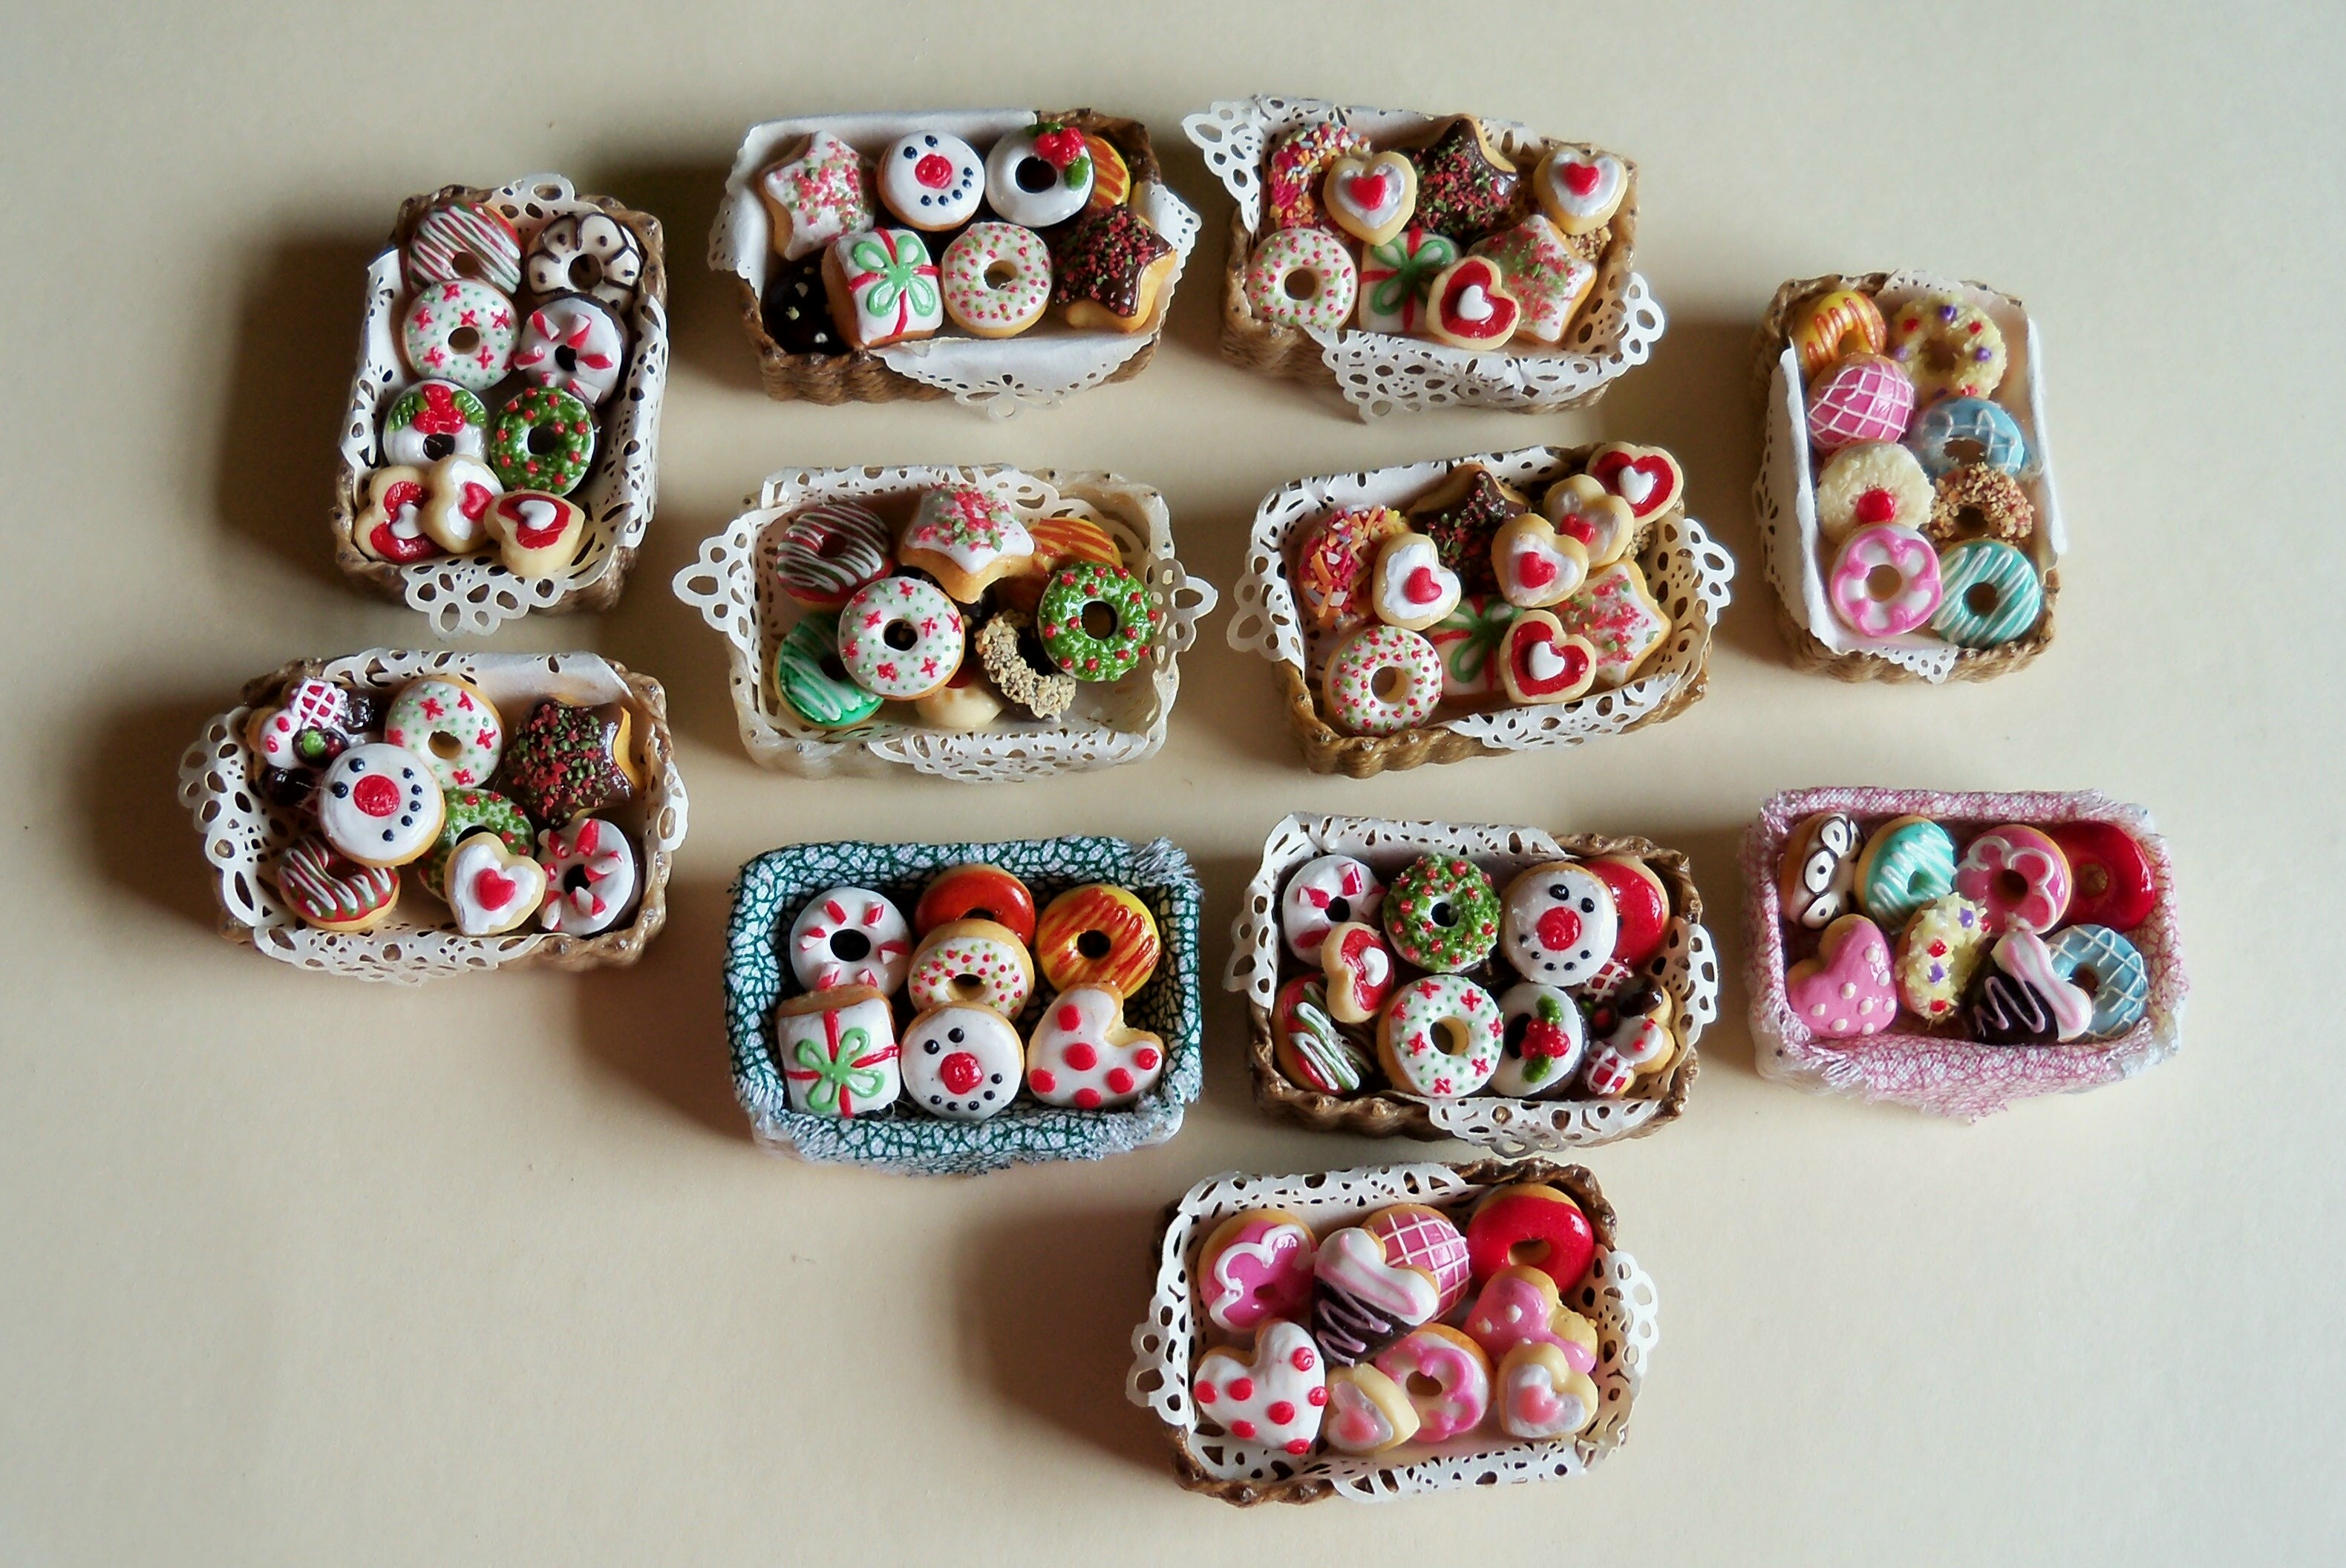 New assorted pastry baskets